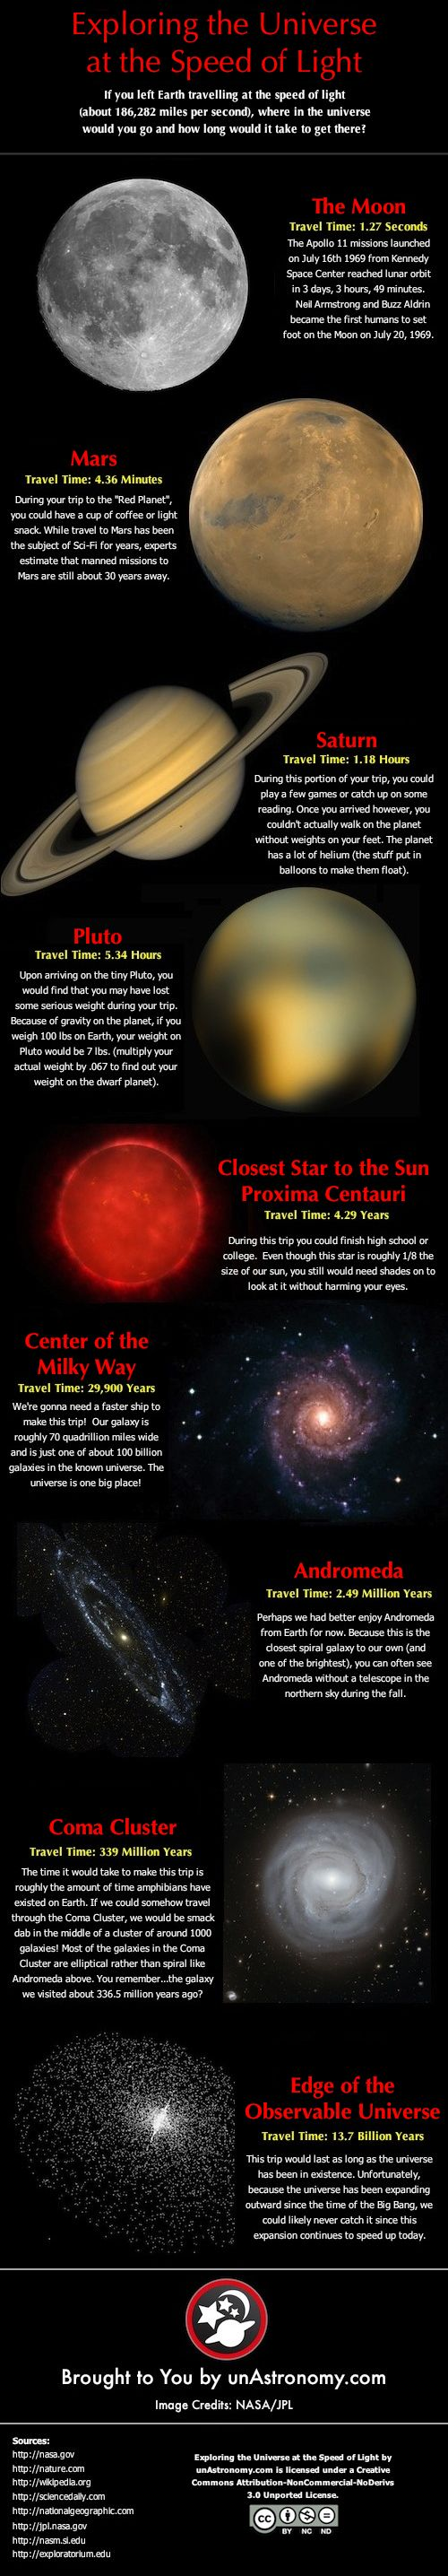 This is AWESOME! |via unAstronomy.com